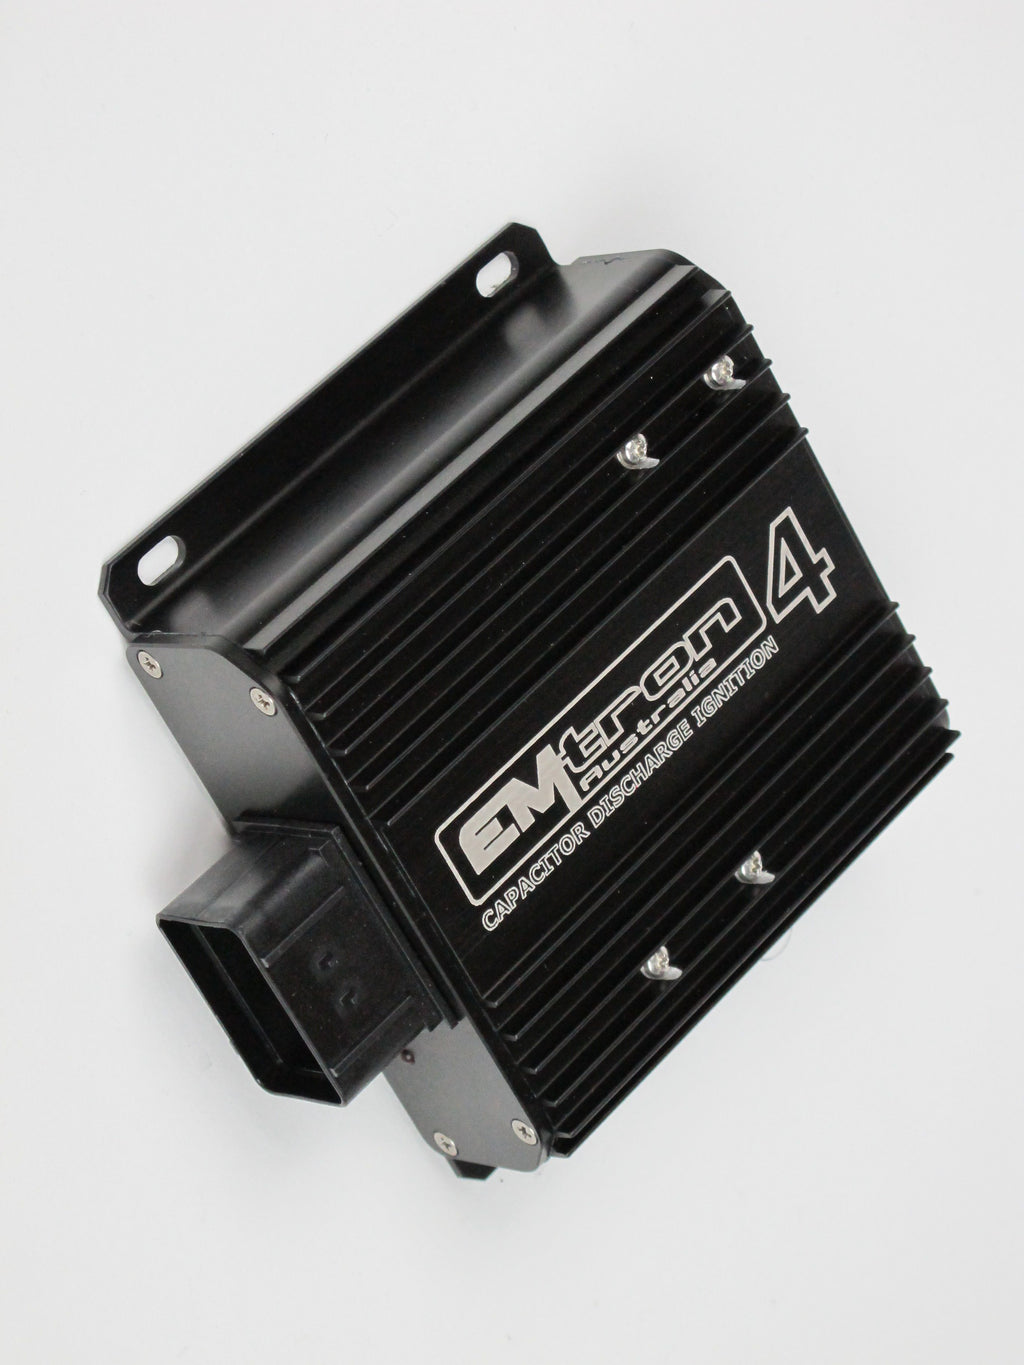 Emtron CDI-4  Ignition - SIMPLETECHNIQES  PERFORMANCE